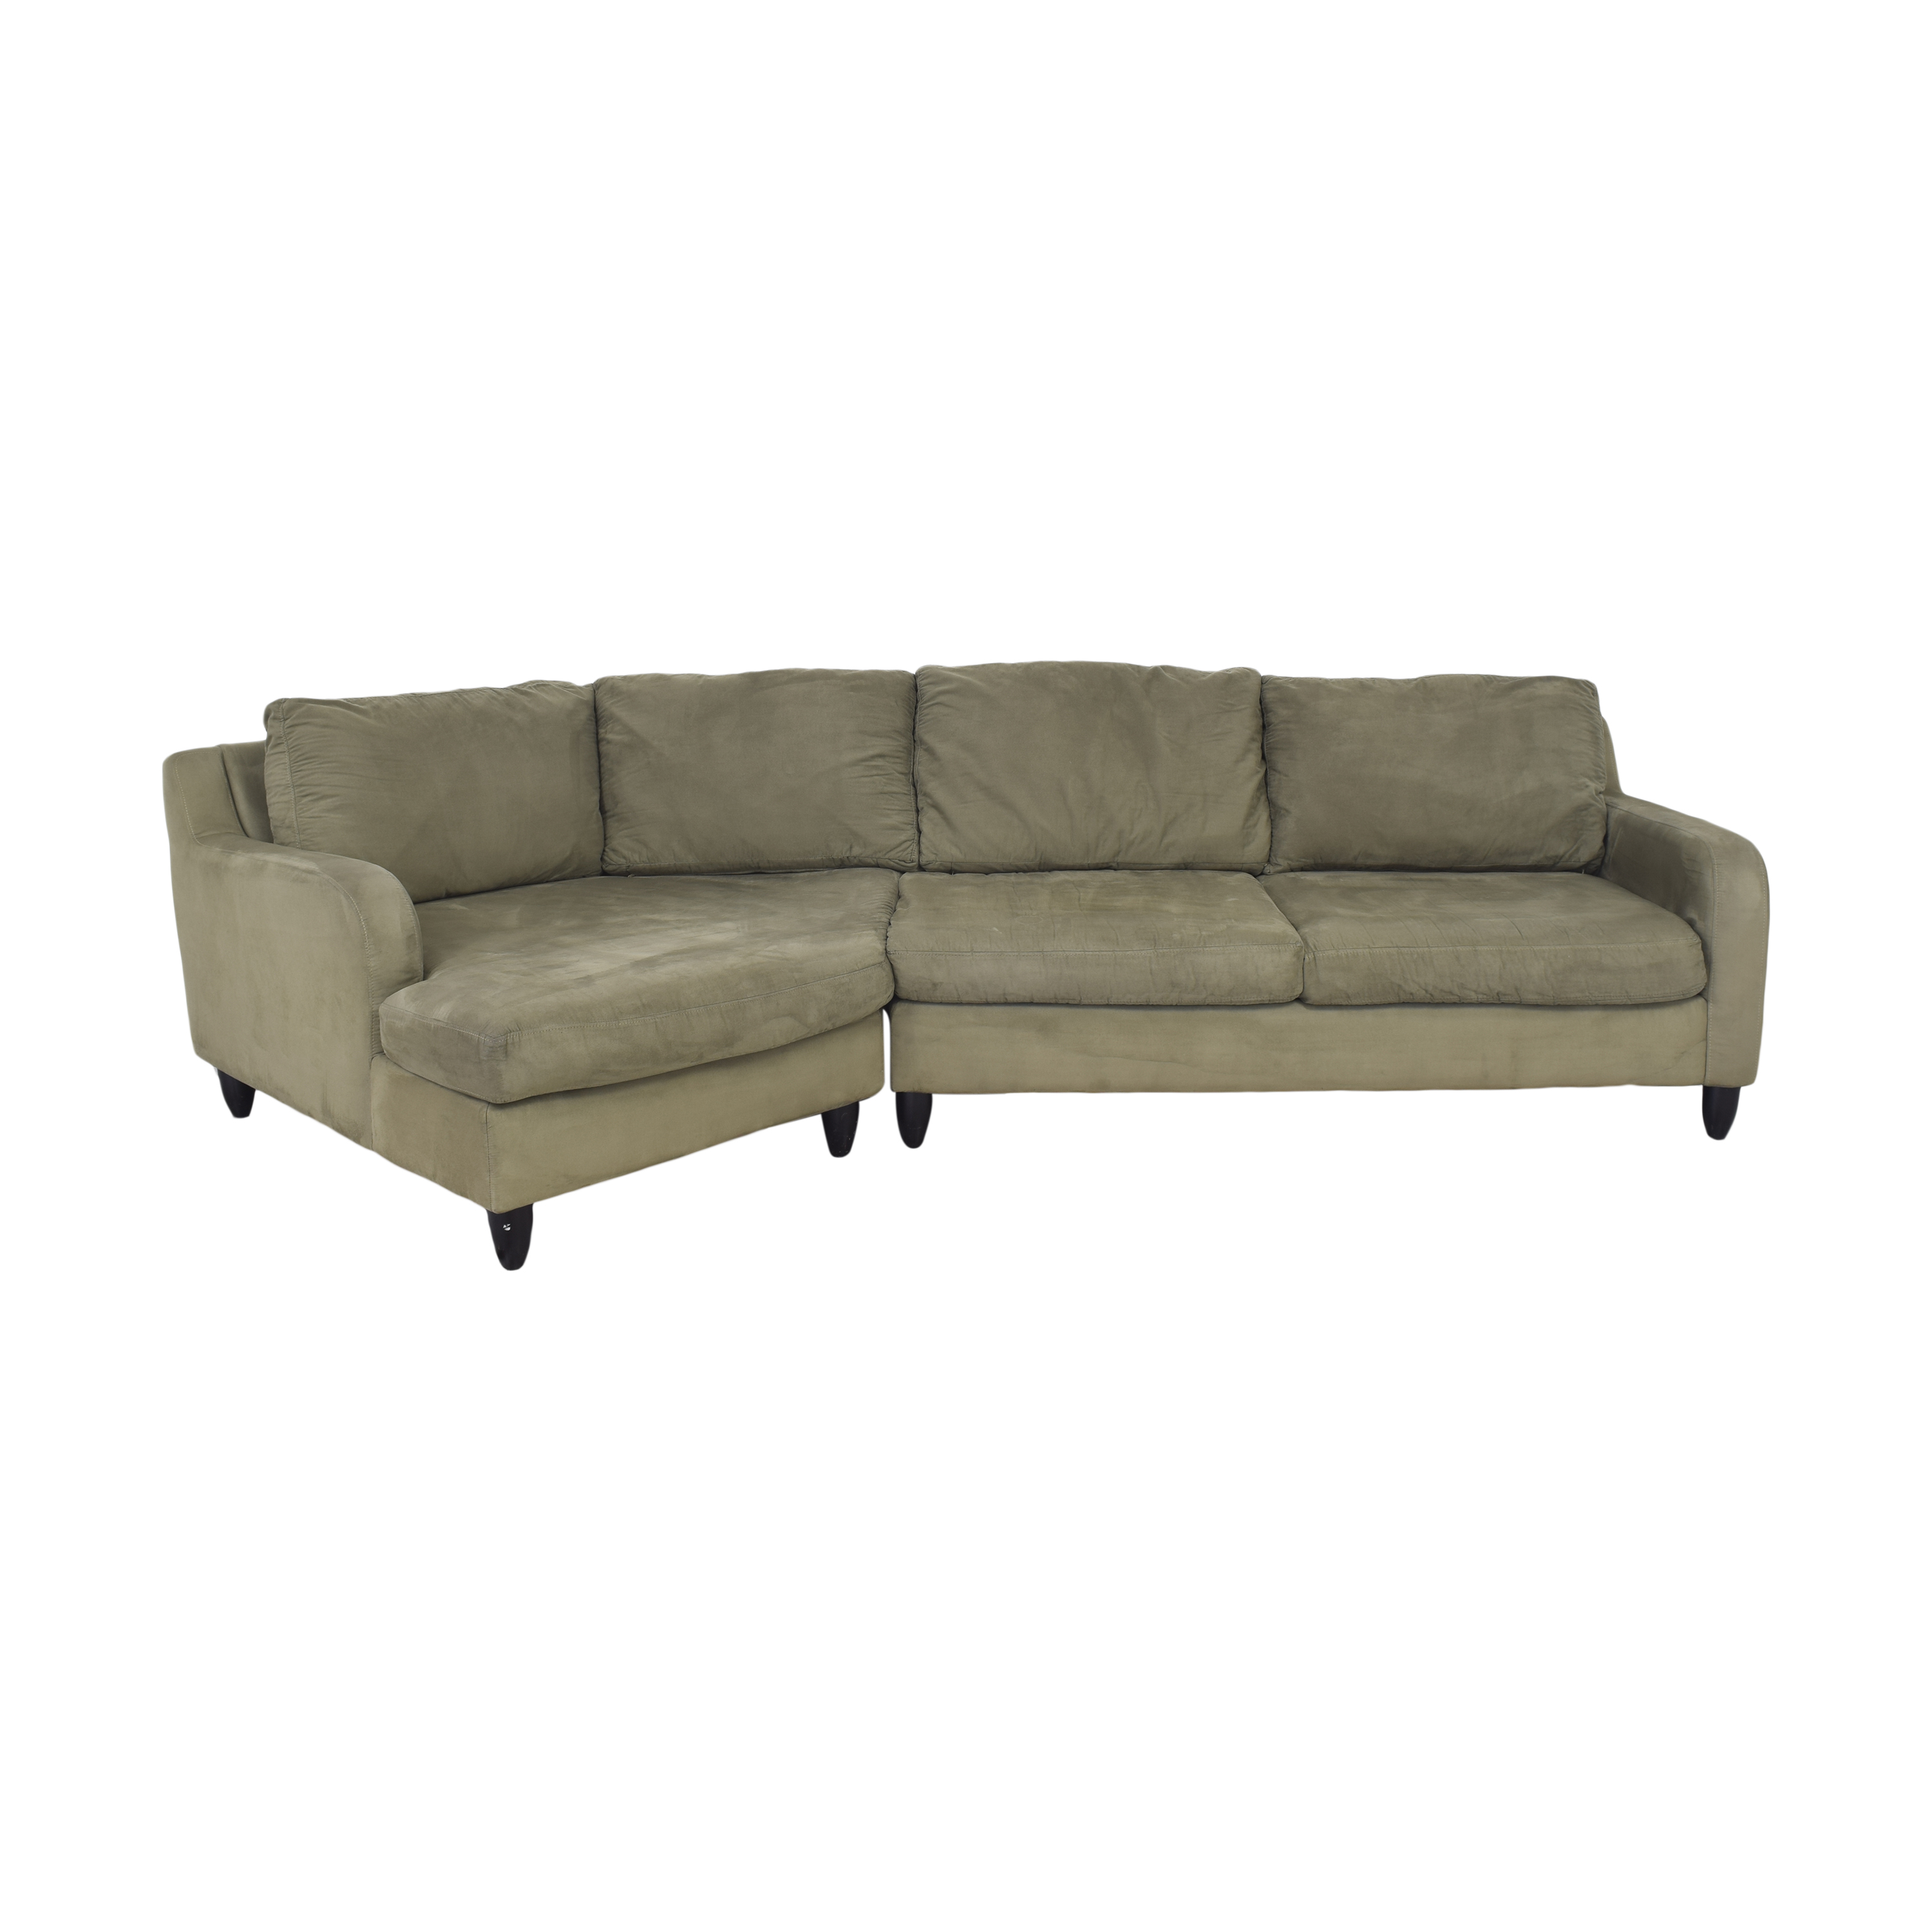 Max Home Max Home Jessica Sectional Sofa used